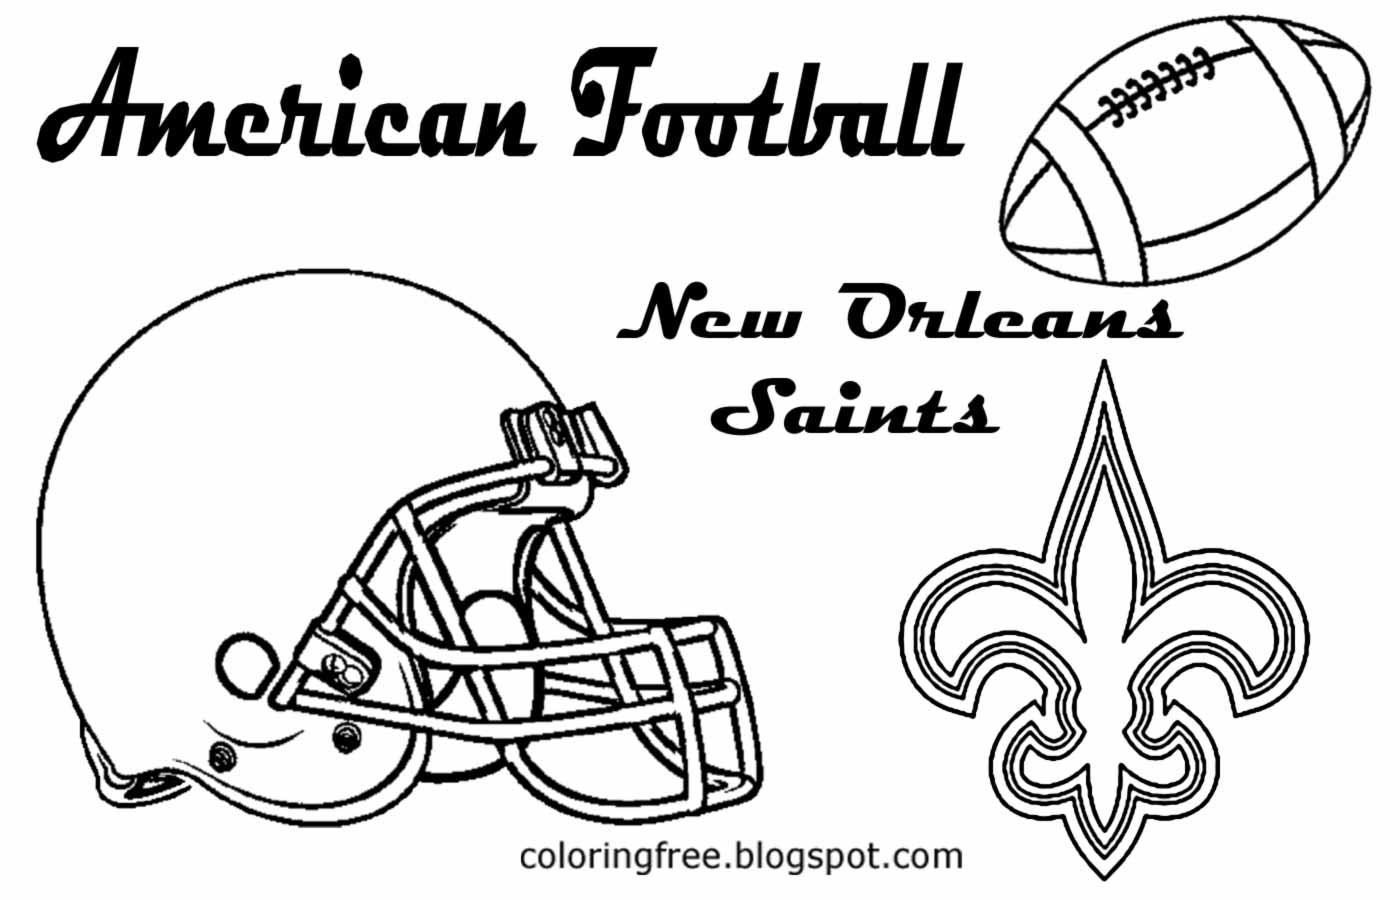 New orleans saints coloring pages to print murderthestout for Saints coloring pages to print